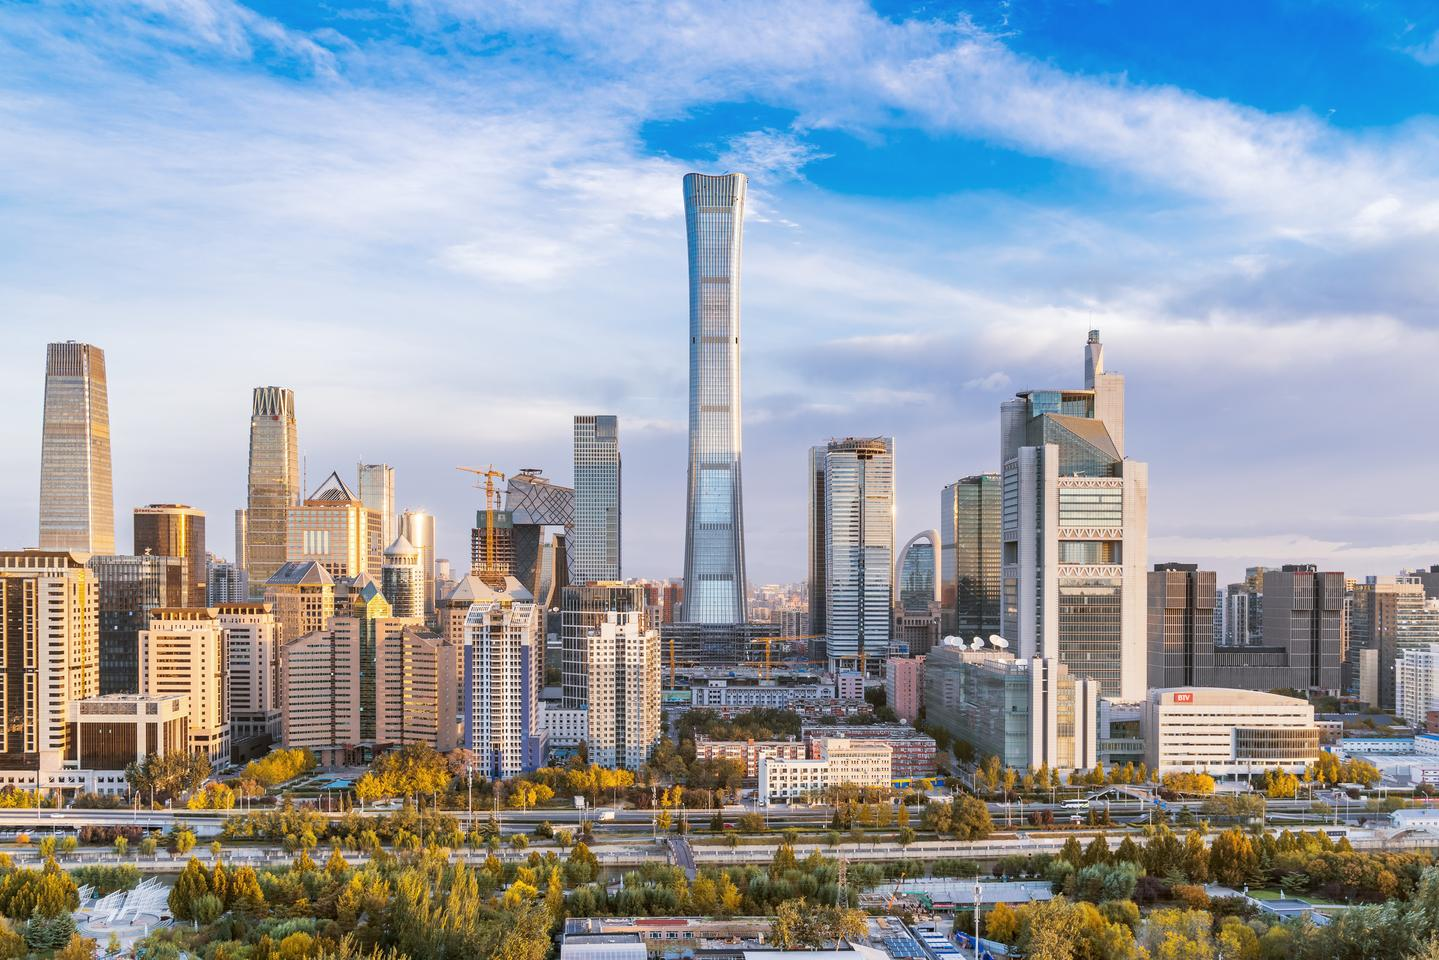 CITIC Tower is more popularly known as China Zun